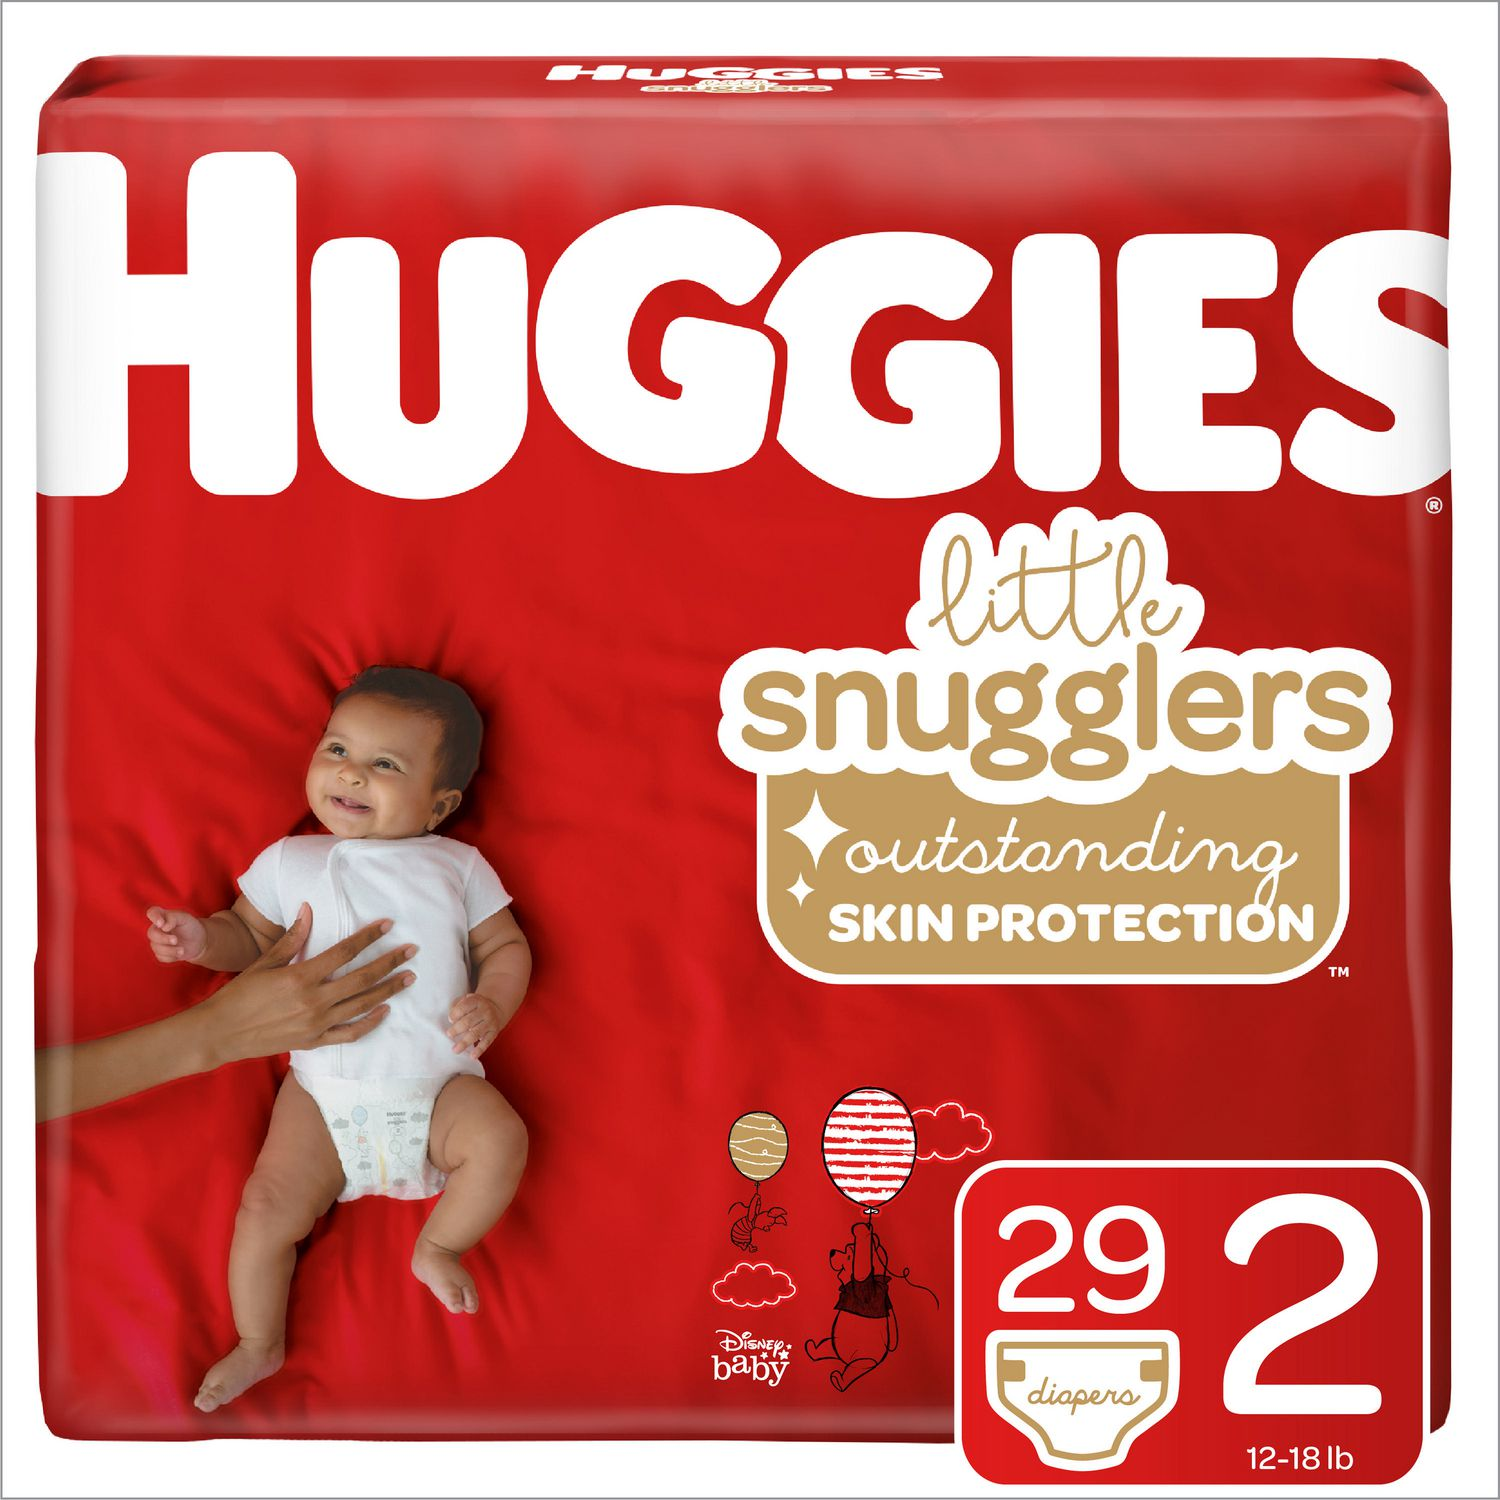 Huggies Little Snugglers Jumbo Pk 36 ct Size 2 12-18 Lbs Disposable Baby Diapers